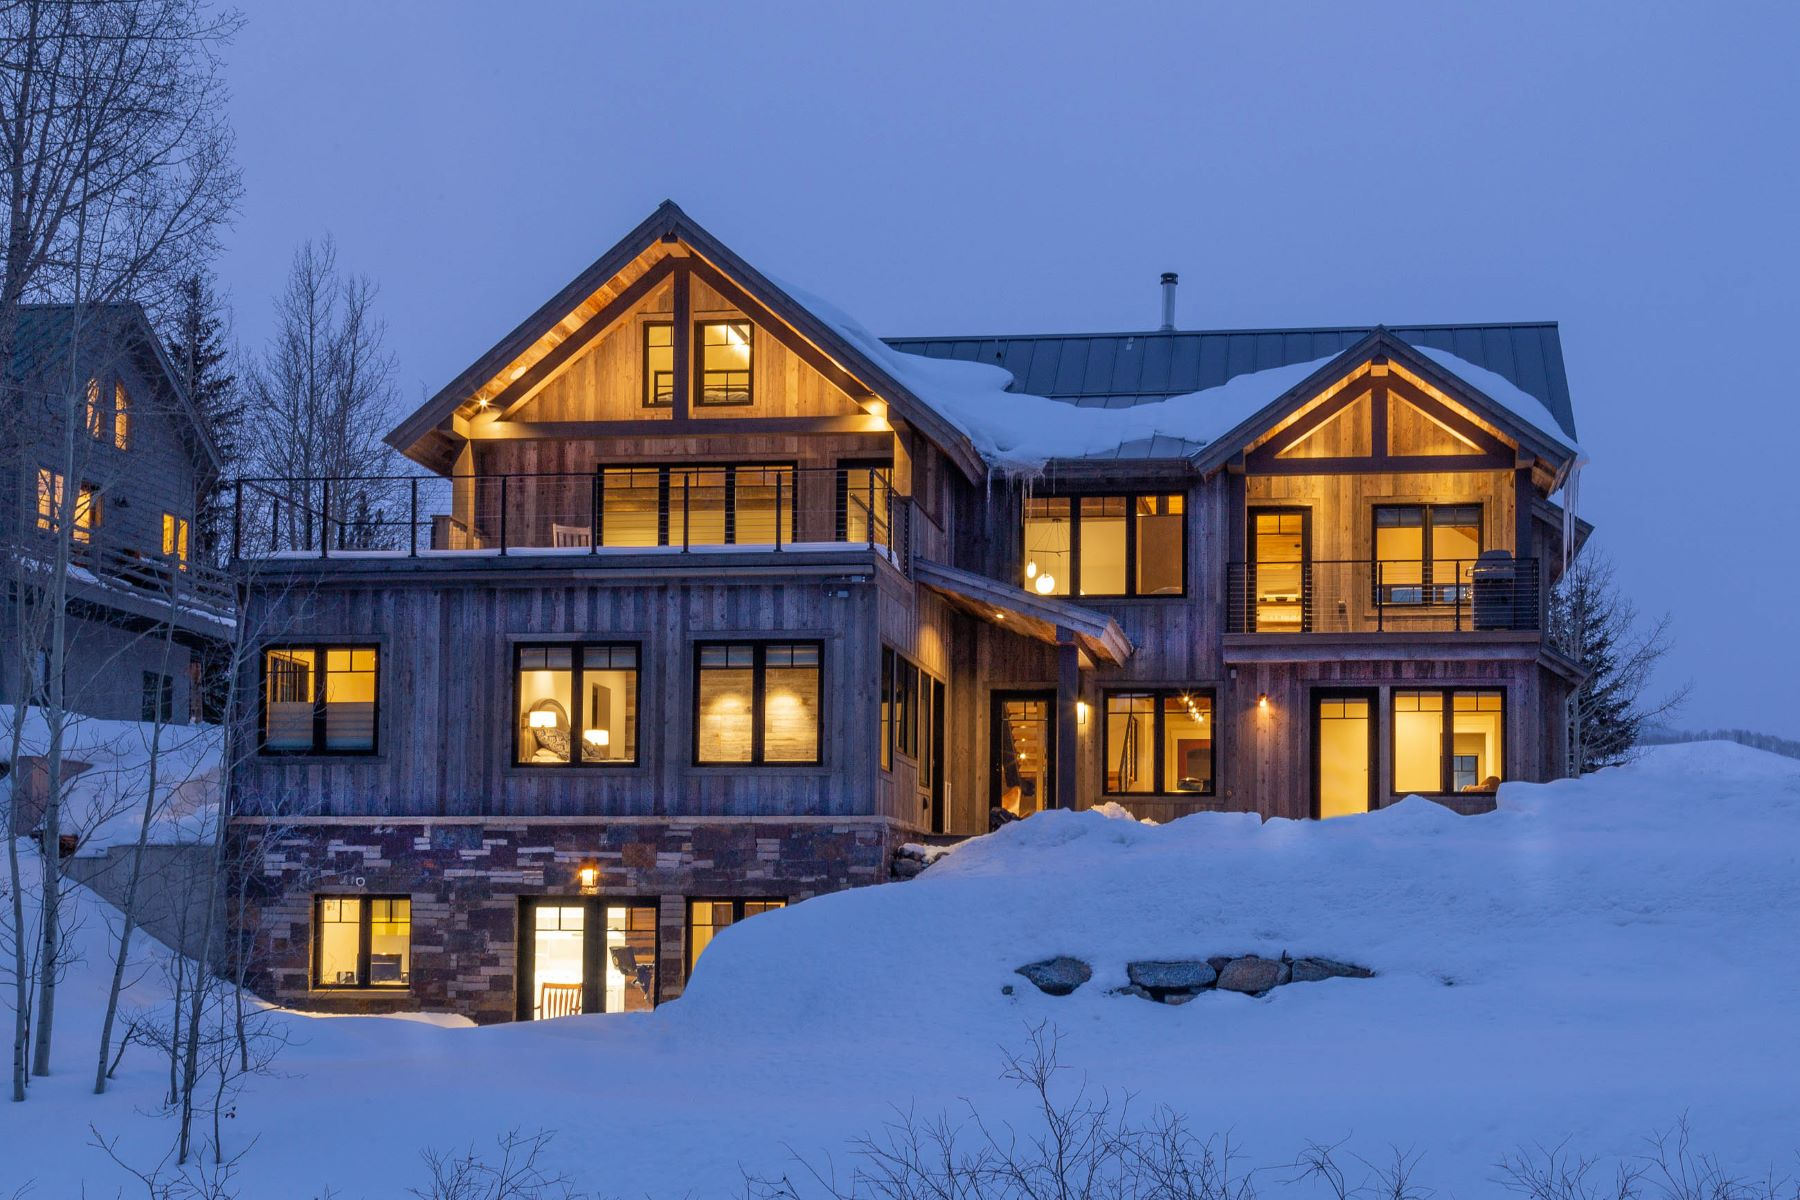 Single Family Homes for Sale at 6 Treasury Hill Road Crested Butte, Colorado 81224 United States